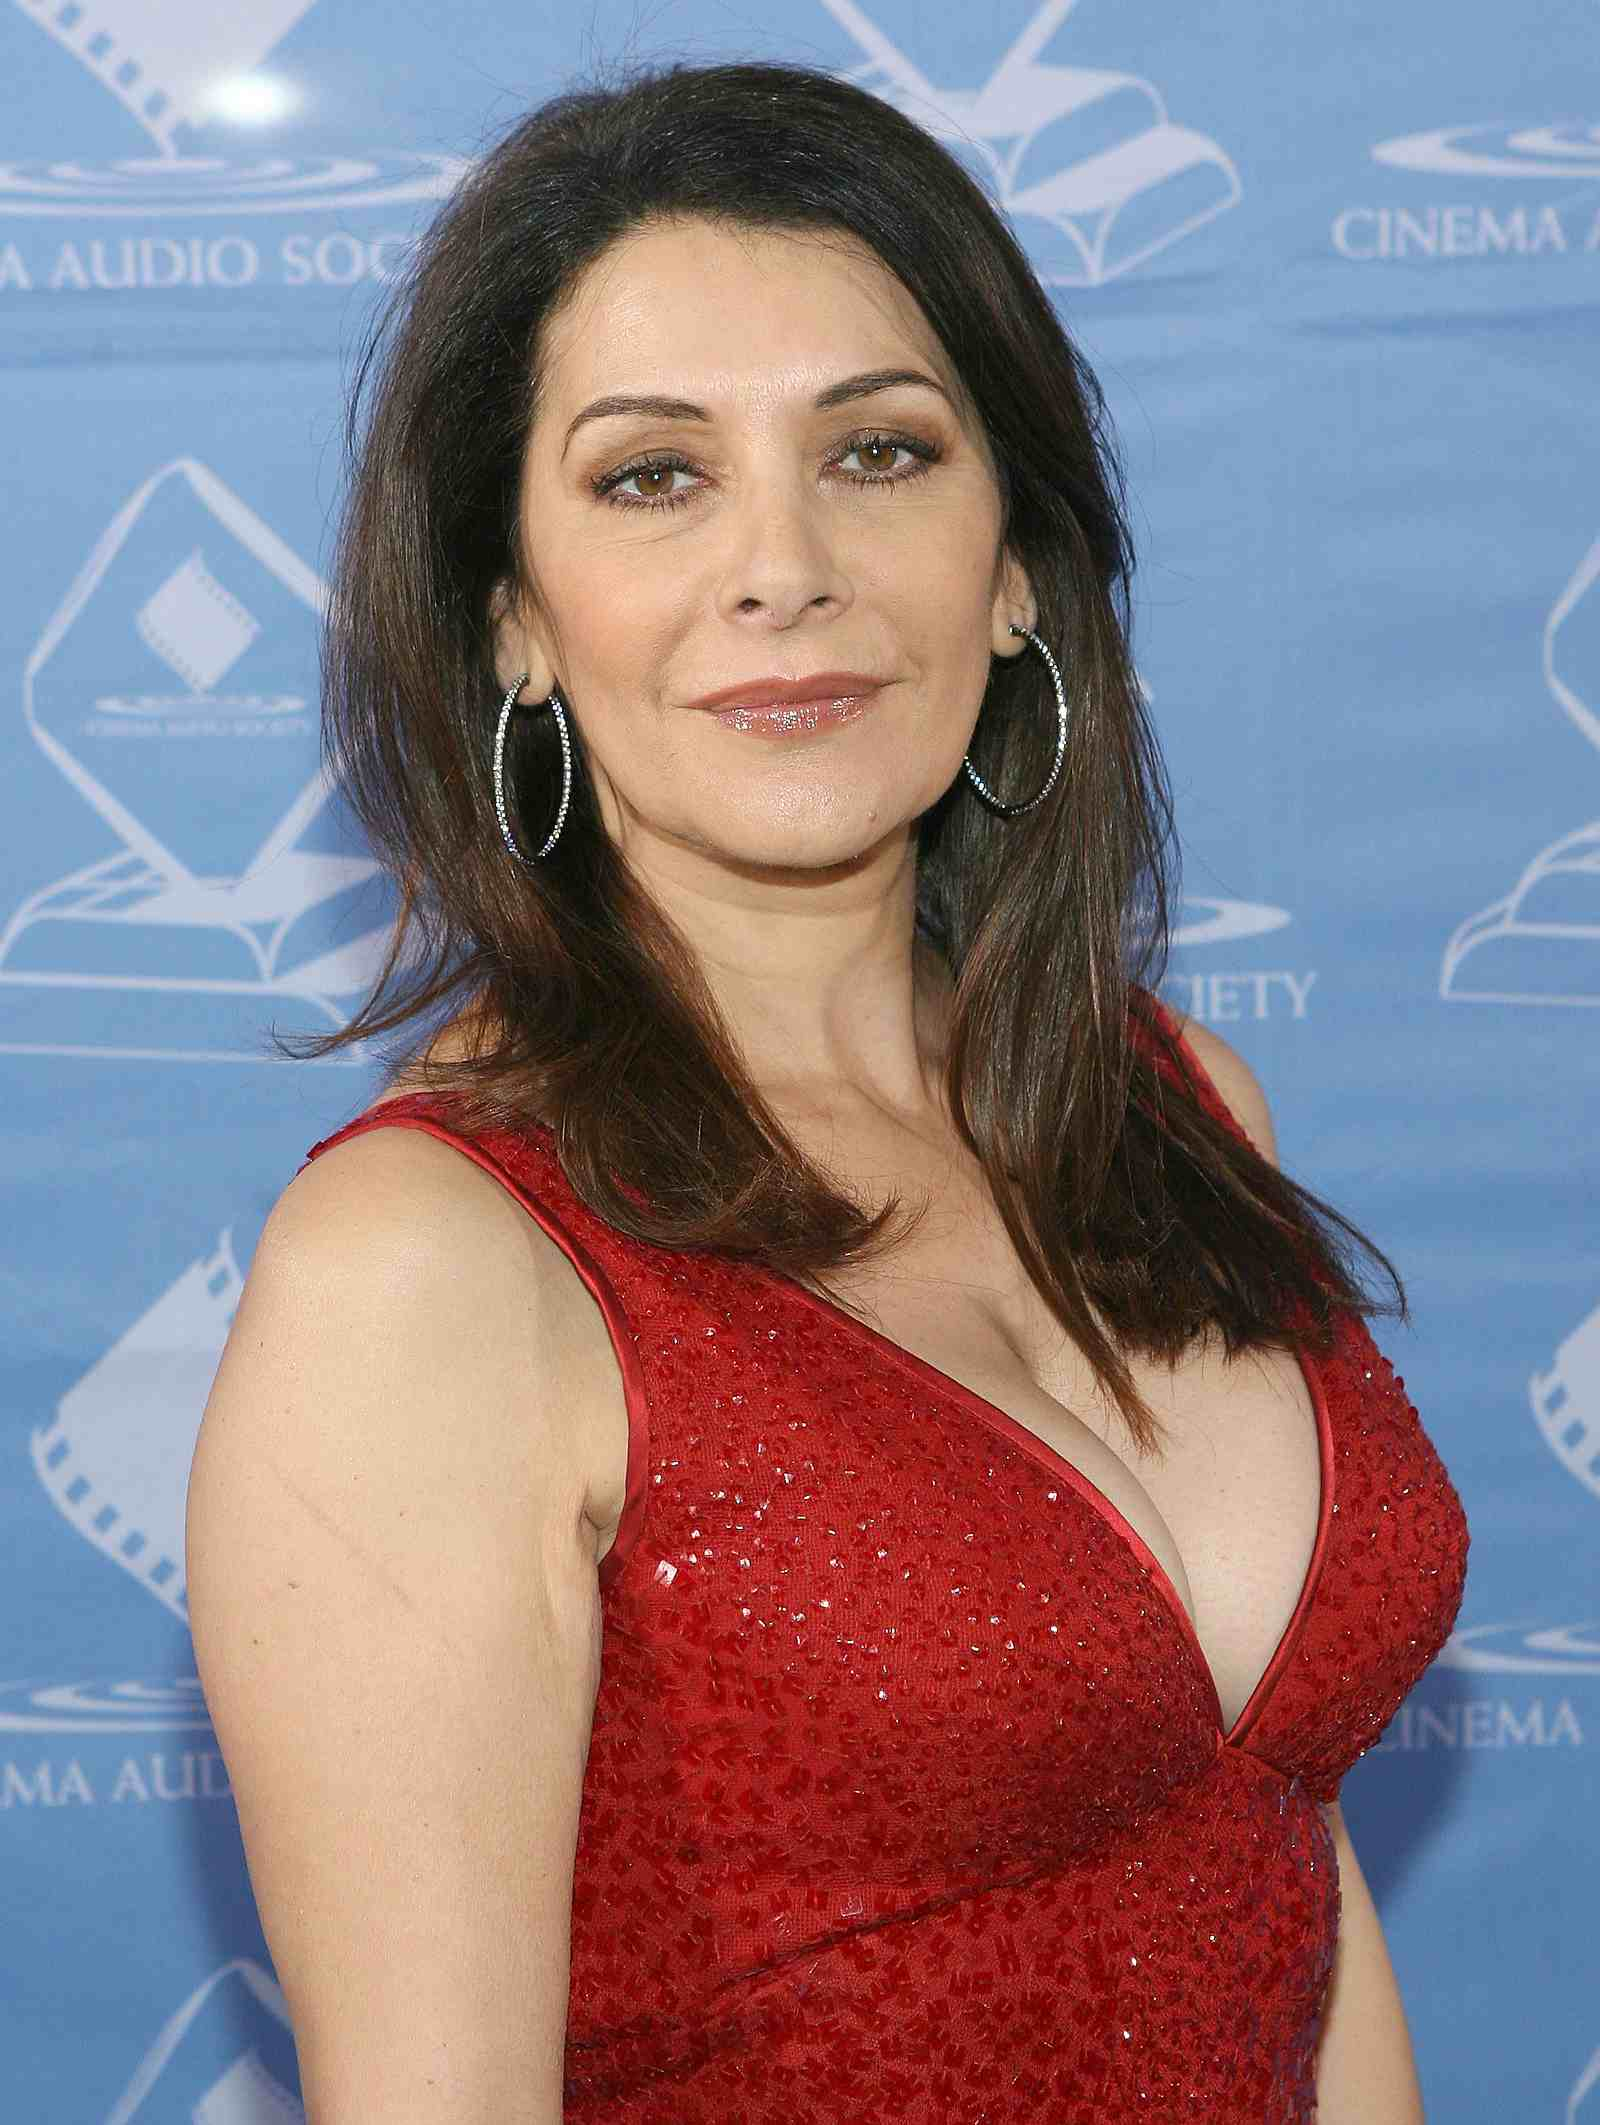 Marina Sirtis in Red Dress